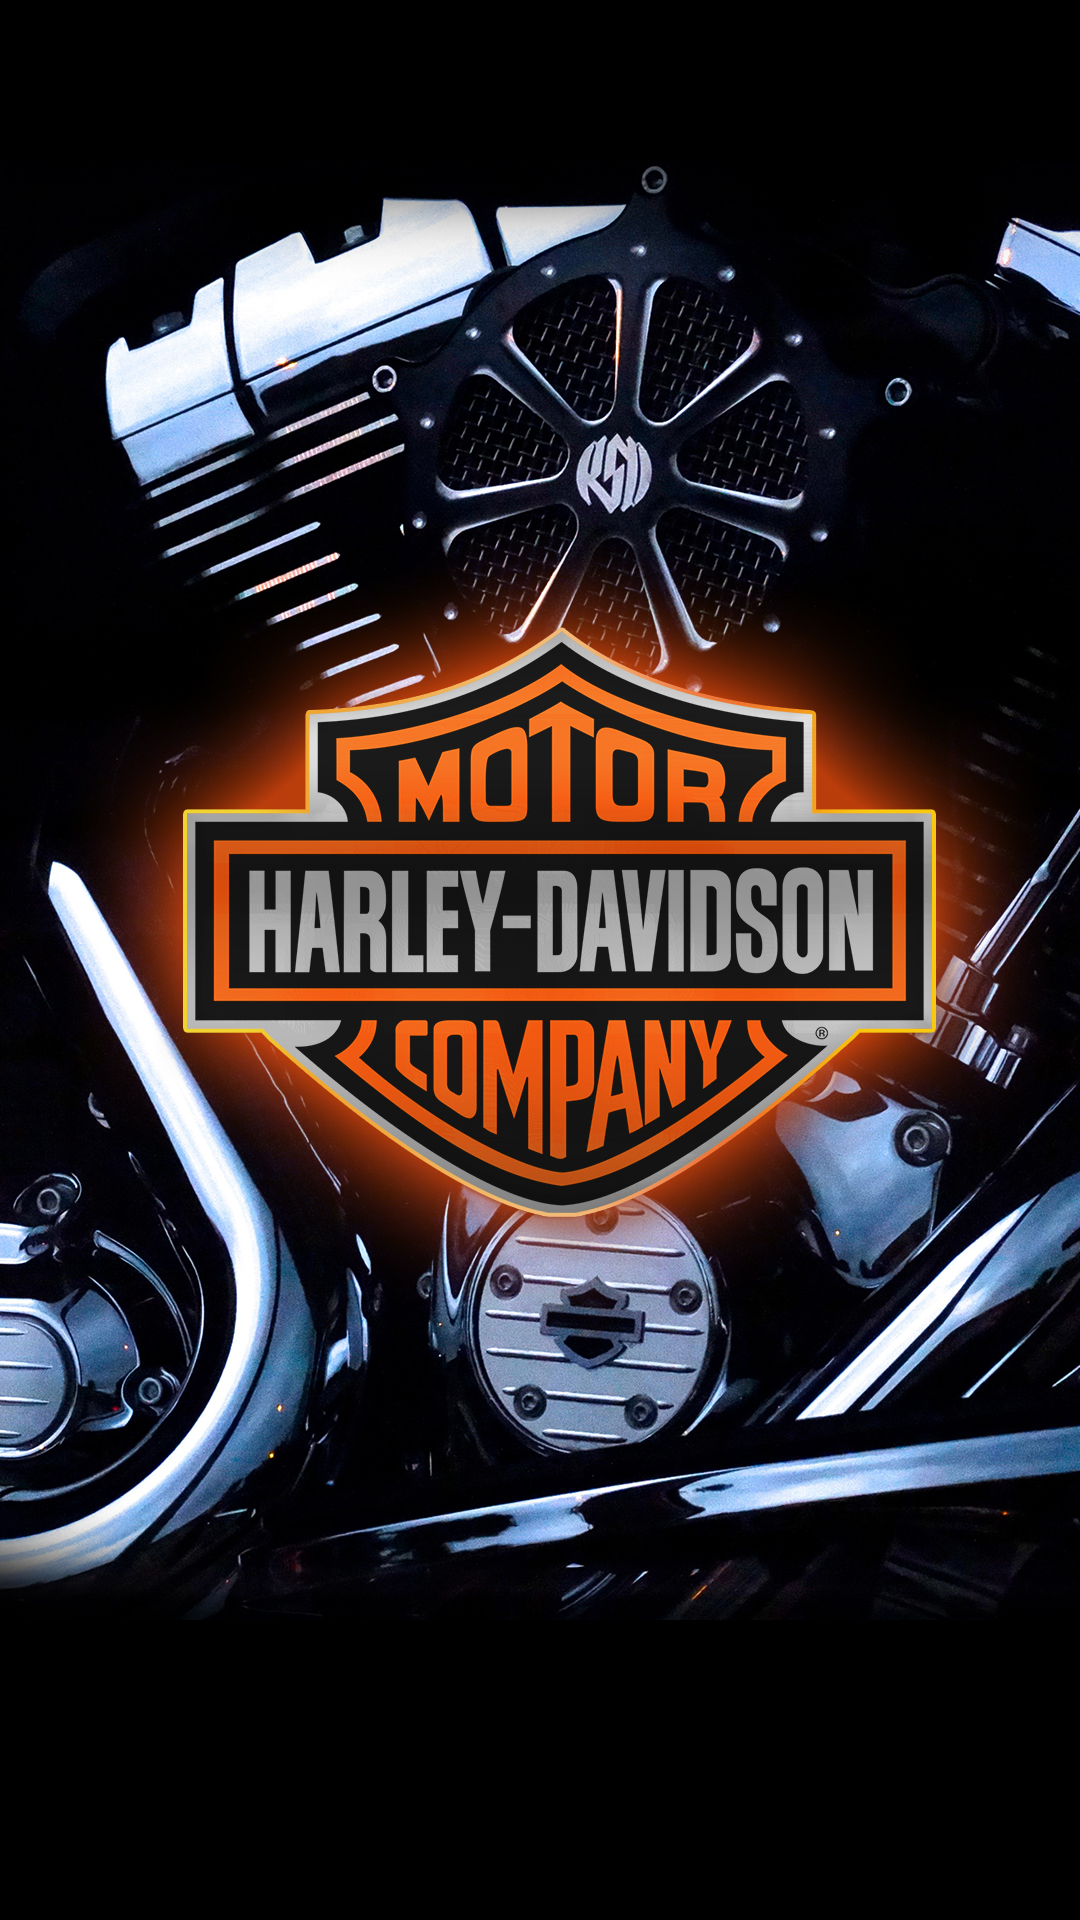 Free Hd Live Wallpapers For Android Phones Harley Davidson 1080 X 1920 Hd Wallpaper